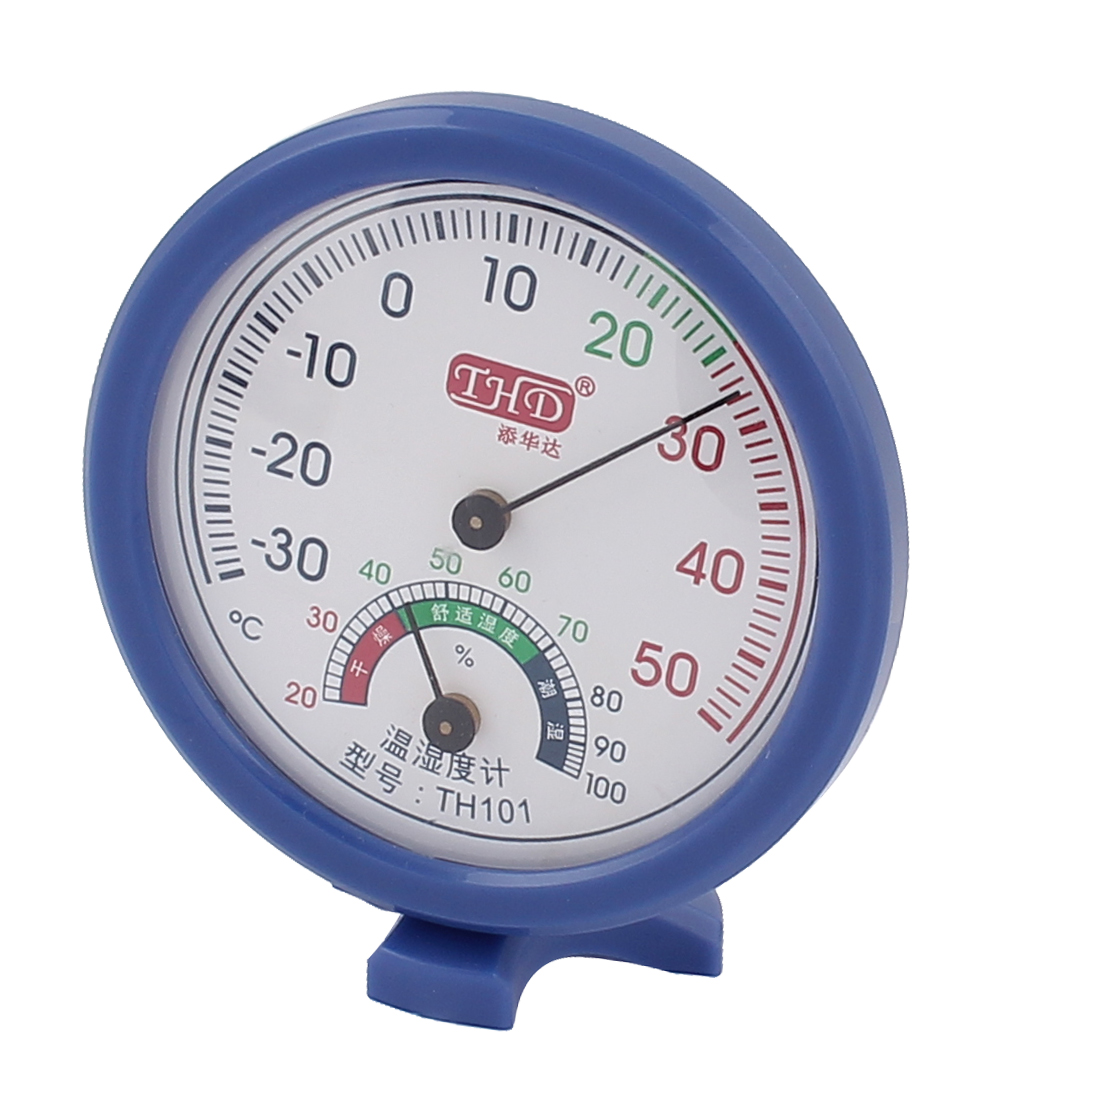 Unique Bargains Home Indoor Measure White Blue Plastic Housing Mini Thermometer Hygrometer by